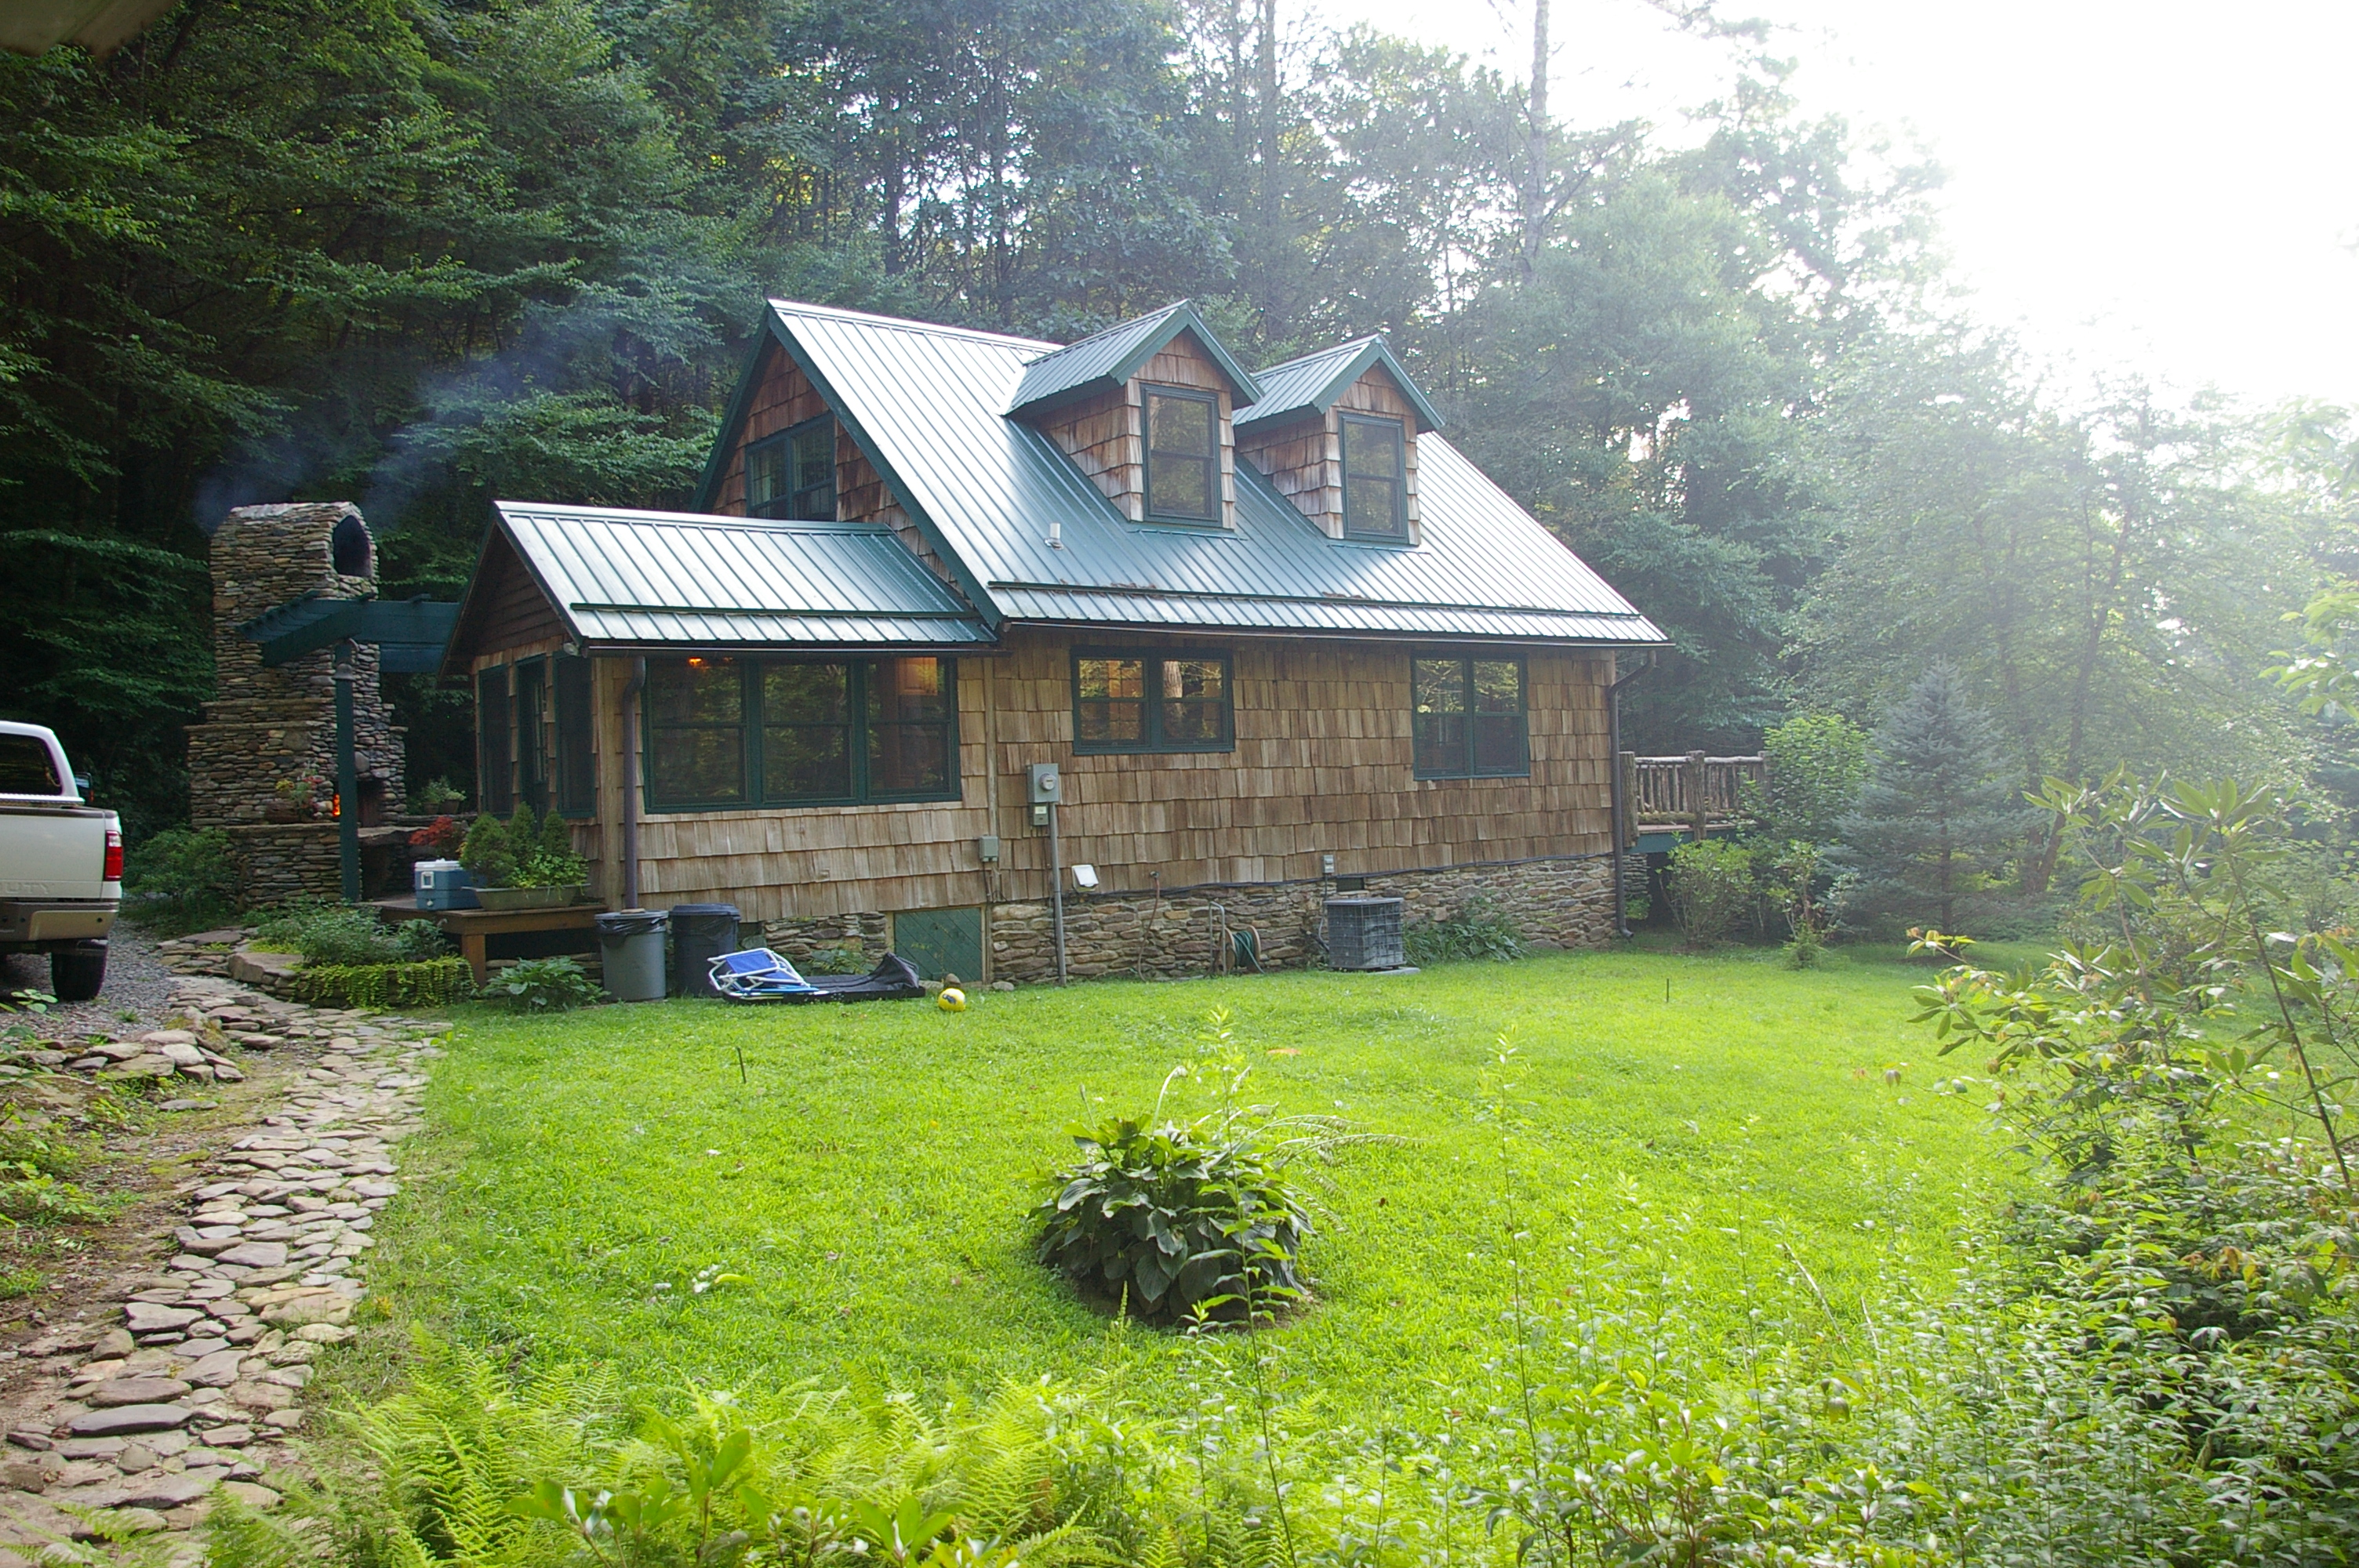 in home nc com for nytimes getimage transylvania imageurl sale s county estate amazonaws homes talley real images usa cabins rd download brevard pre